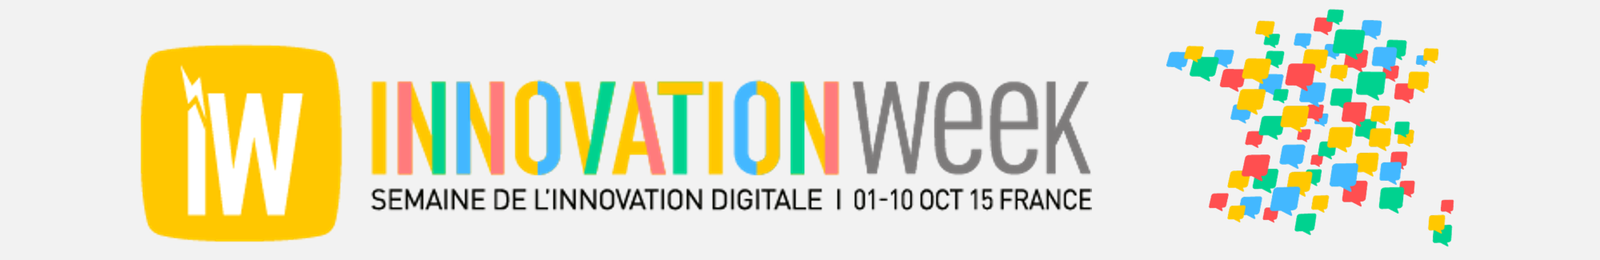 Workshop CES 2016 #InnovationWeek